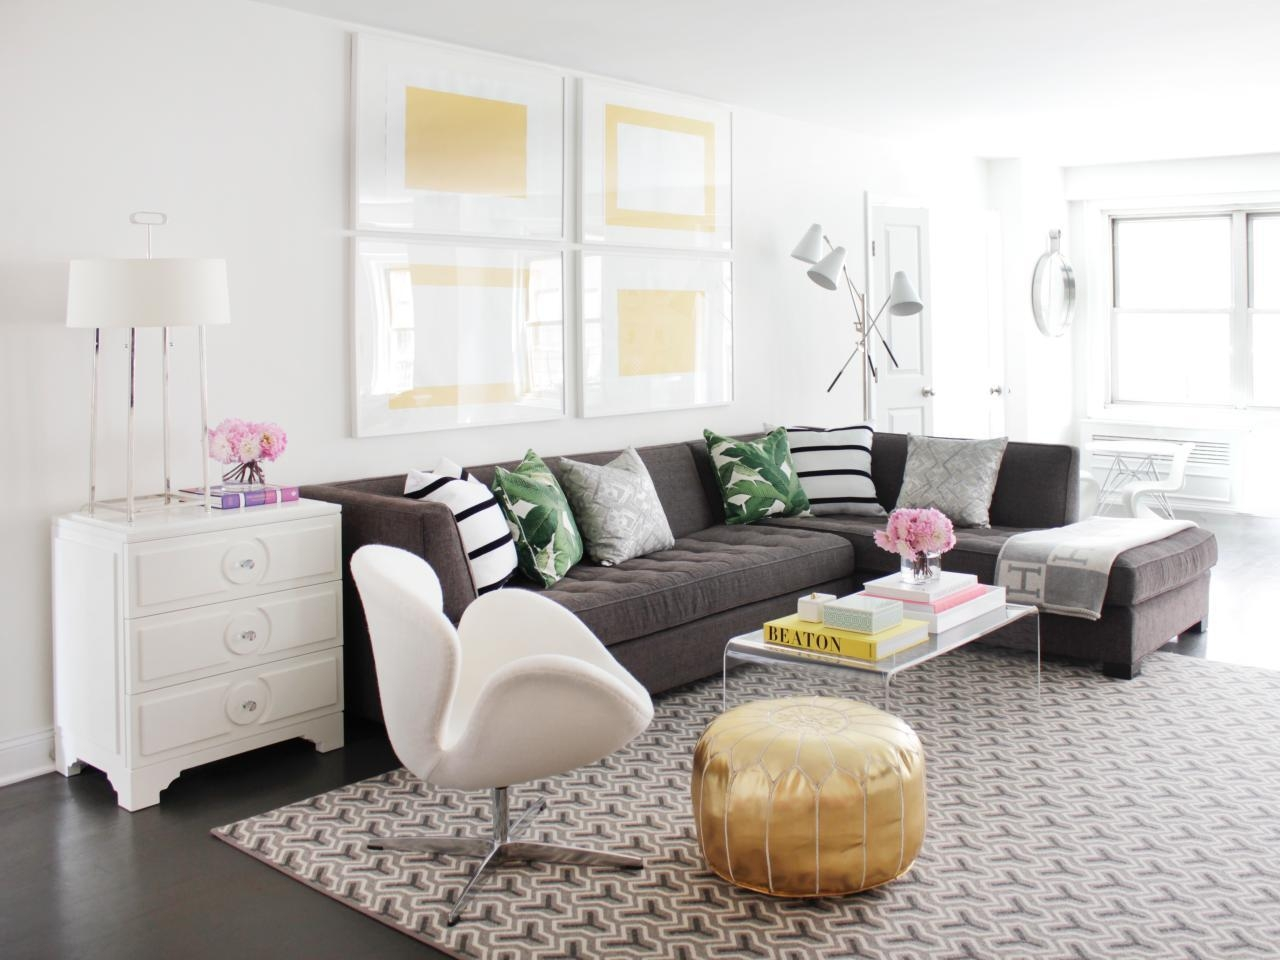 12 Living Room Ideas For A Grey Sectional | Hgtv's Decorating Inside Decorating With A Sectional Sofa (View 3 of 15)